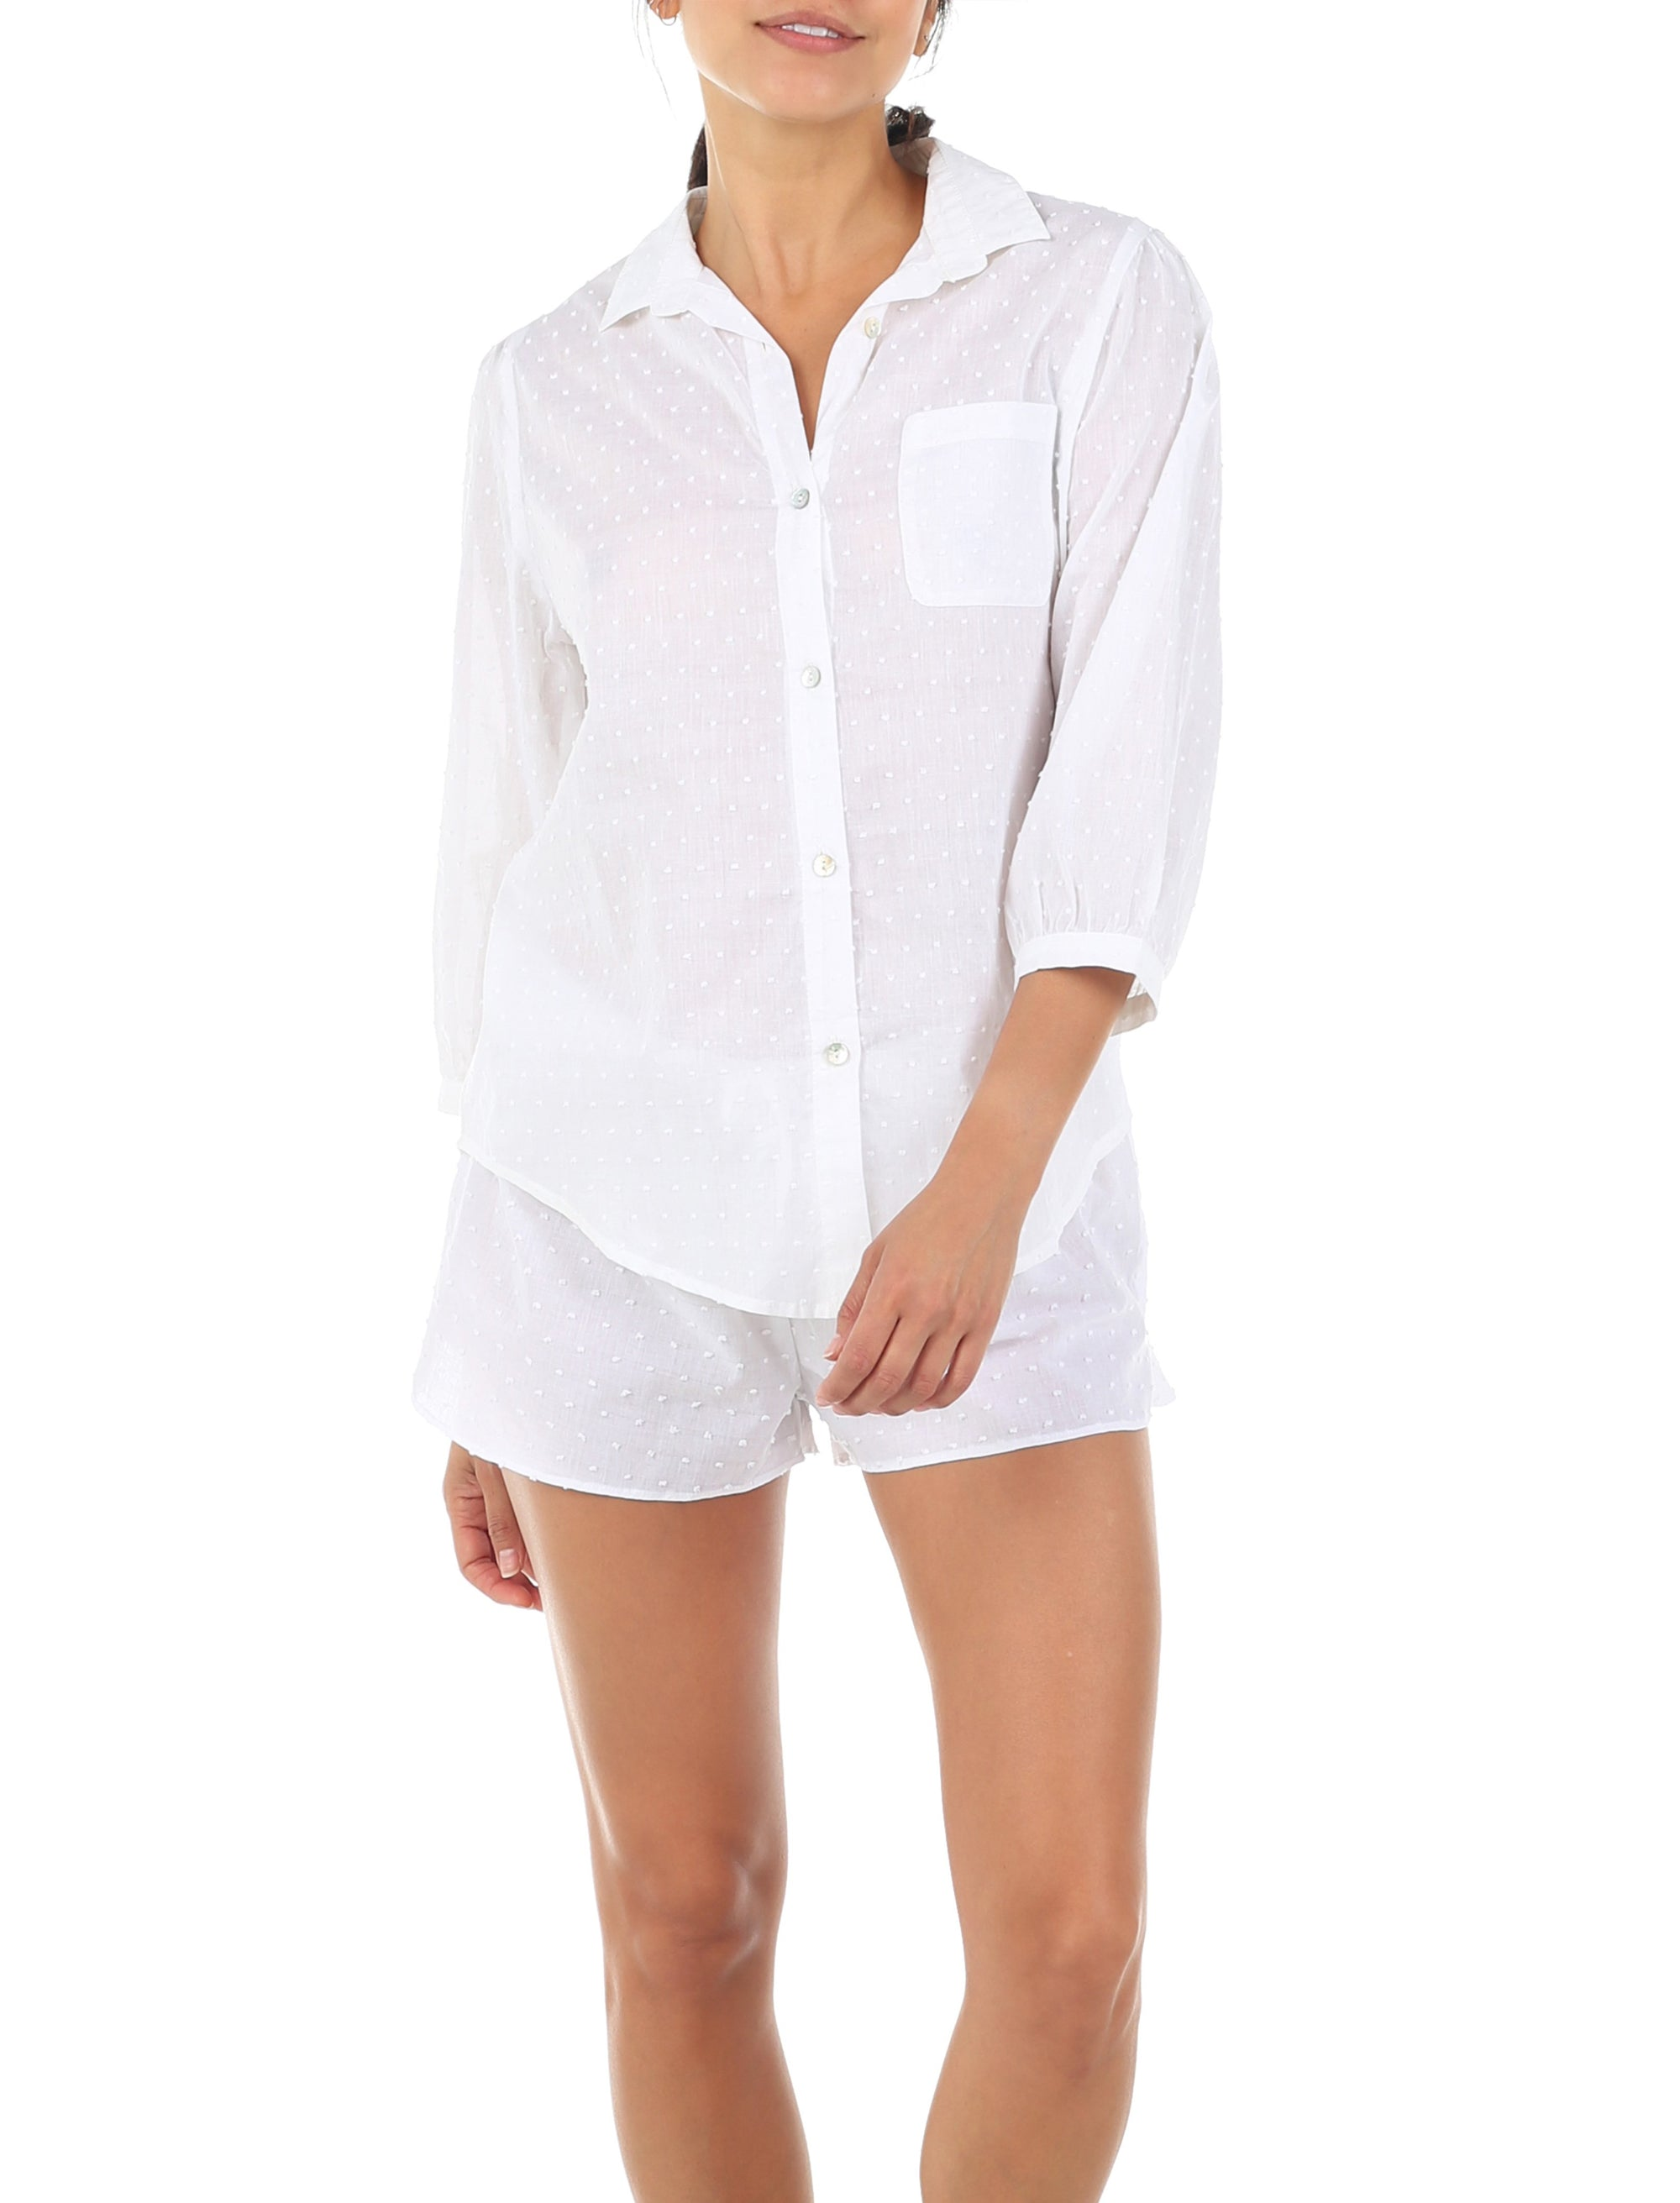 Swiss Dot White Blouse Boxer PJ Set